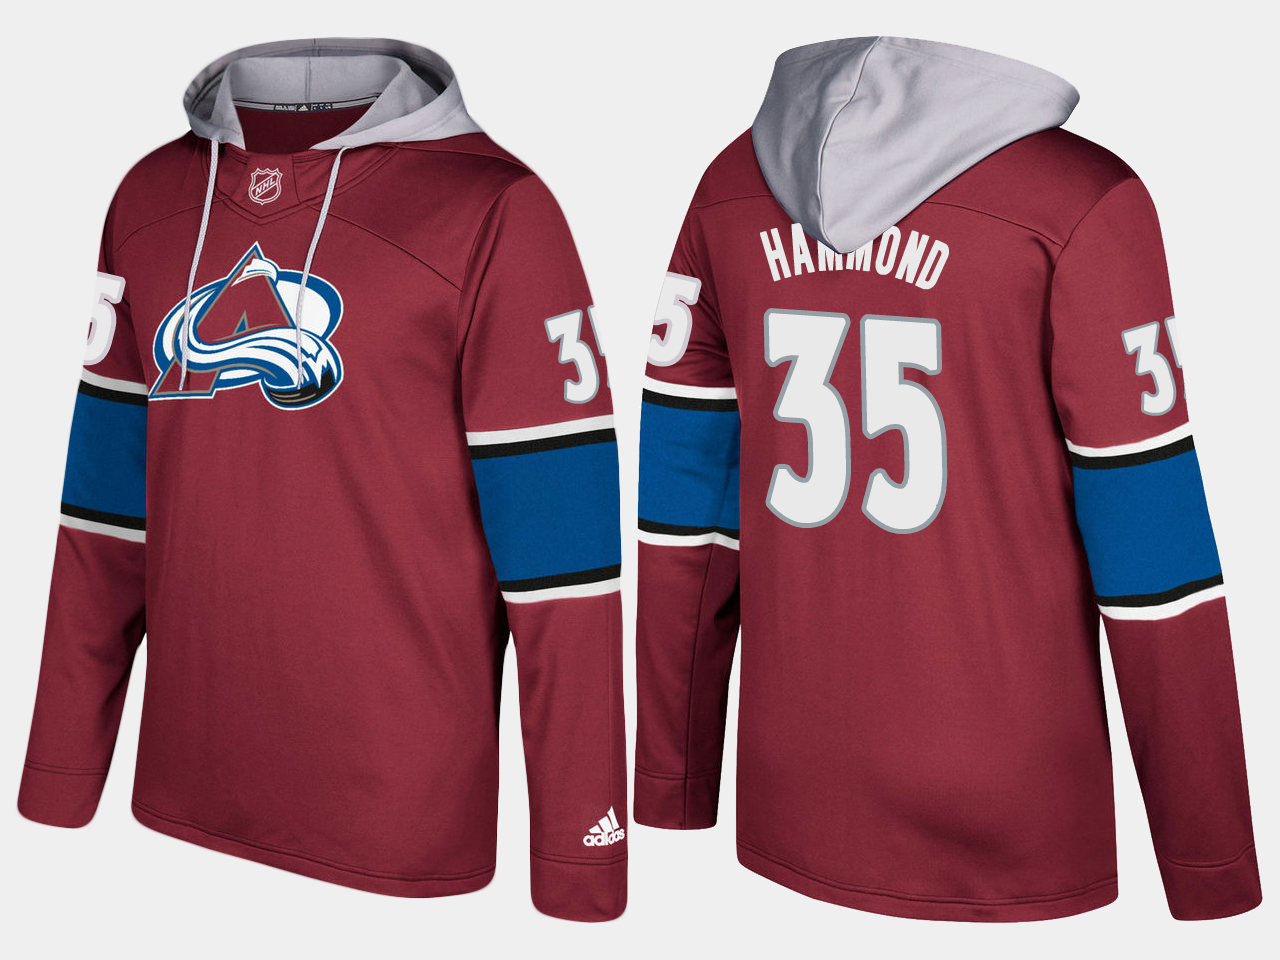 Men NHL Colorado avalanche 35 andrew hammond burgundy hoodie